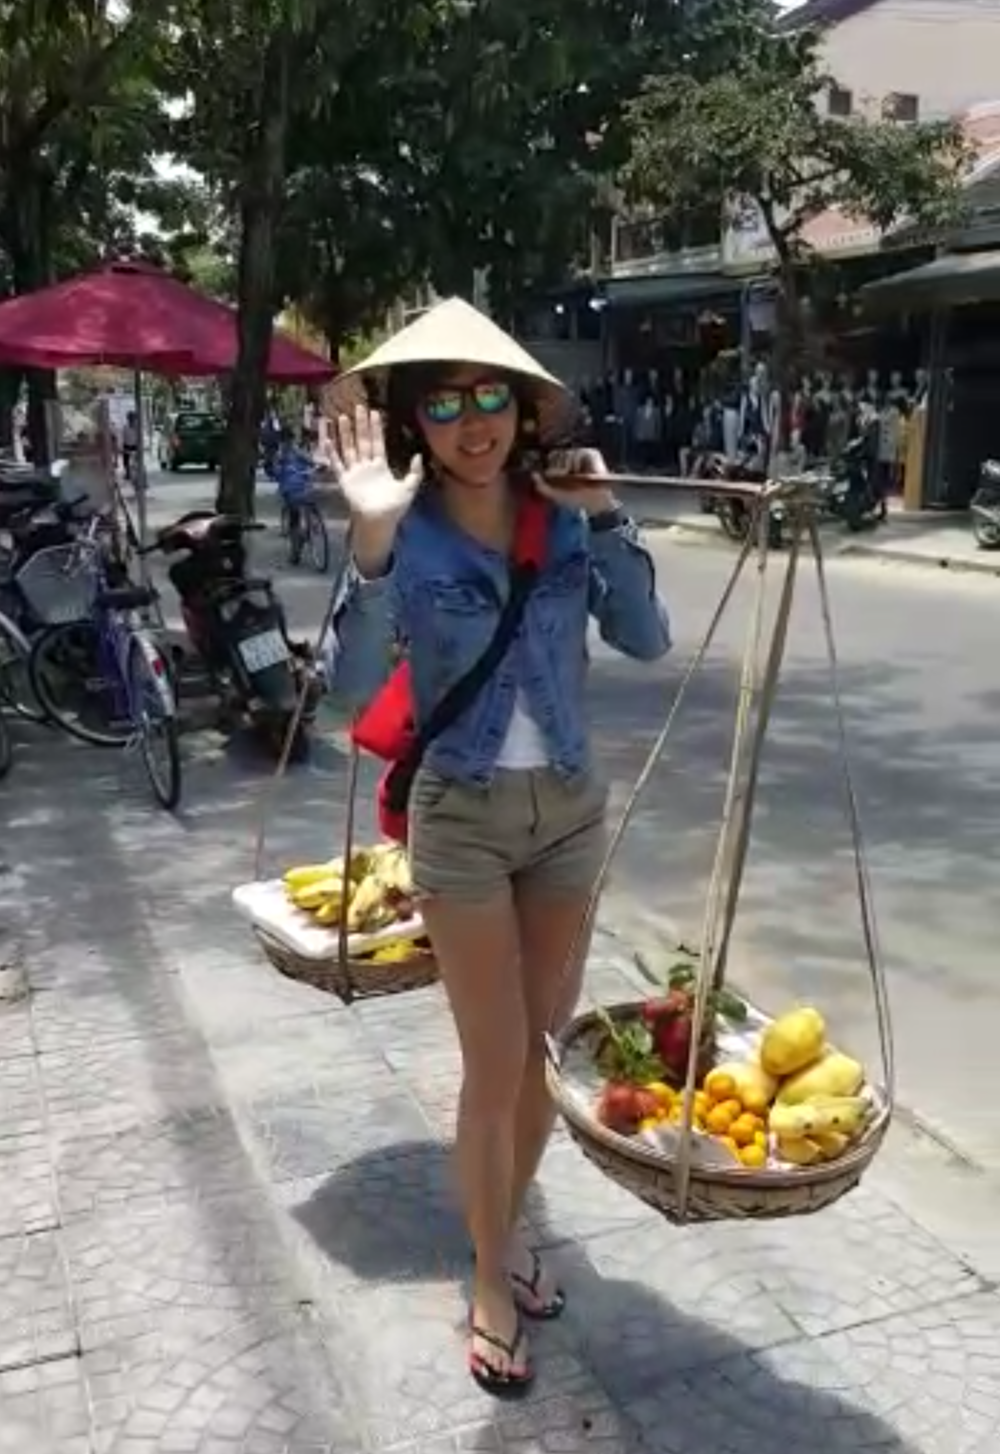 Alright, and please don't ask me how is life with the Air Force anymore because I'm selling fruits in Vietnam now.